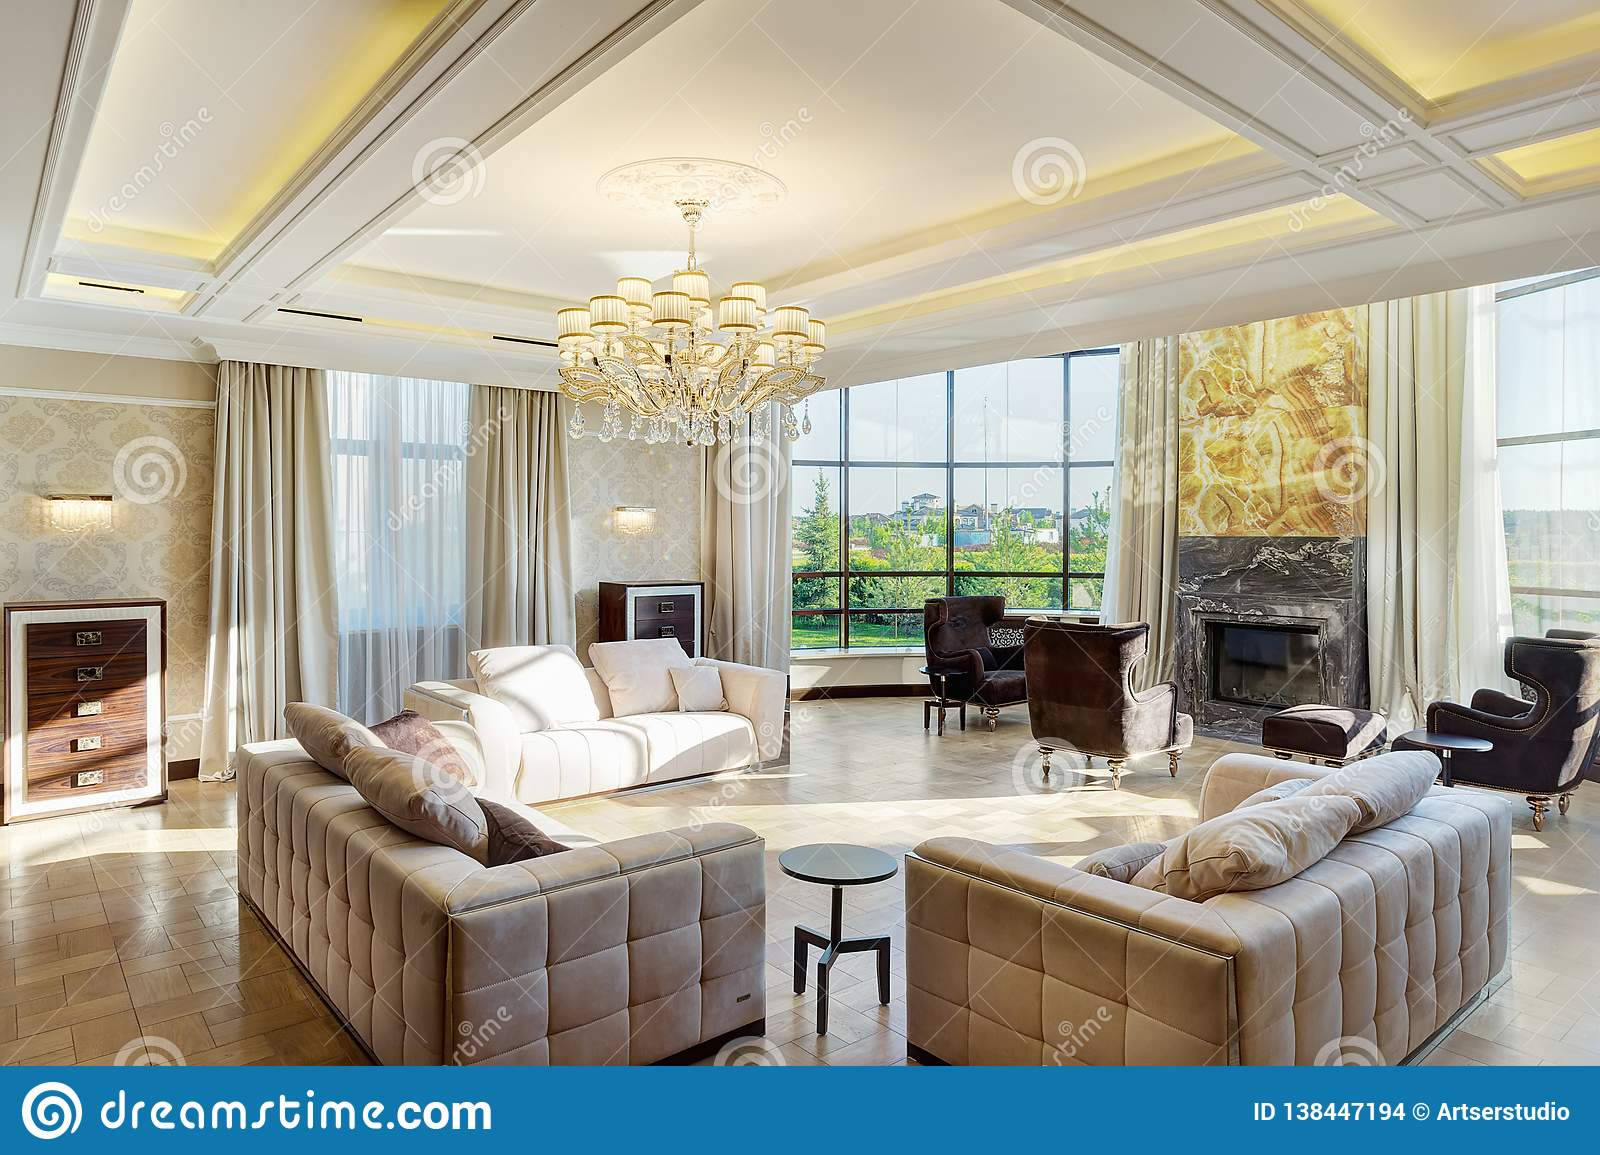 Luxury Room With Big Windows And Crystal Chandelier Stock Photo Image Of Crystal Home 138447194